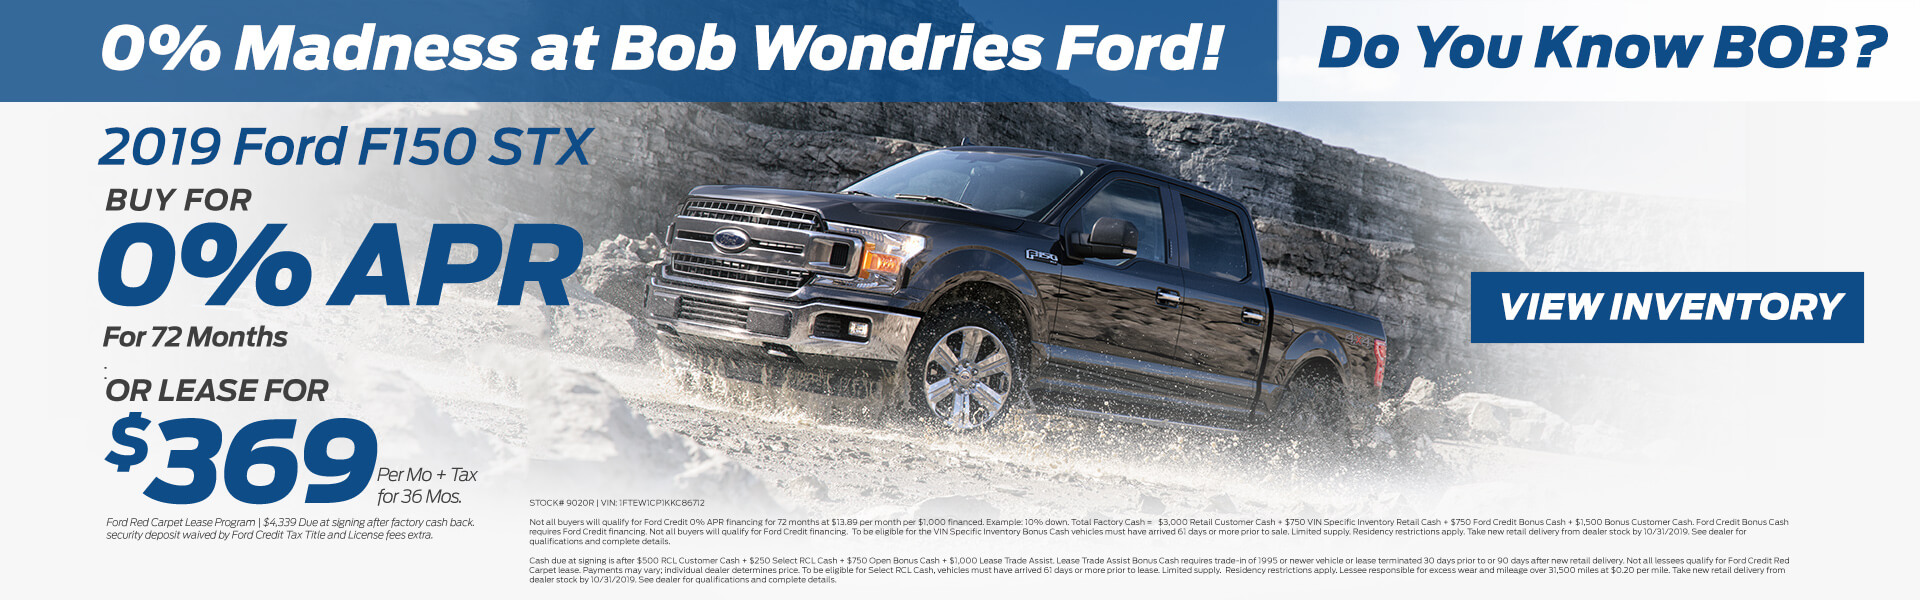 F-150 $369 Lease